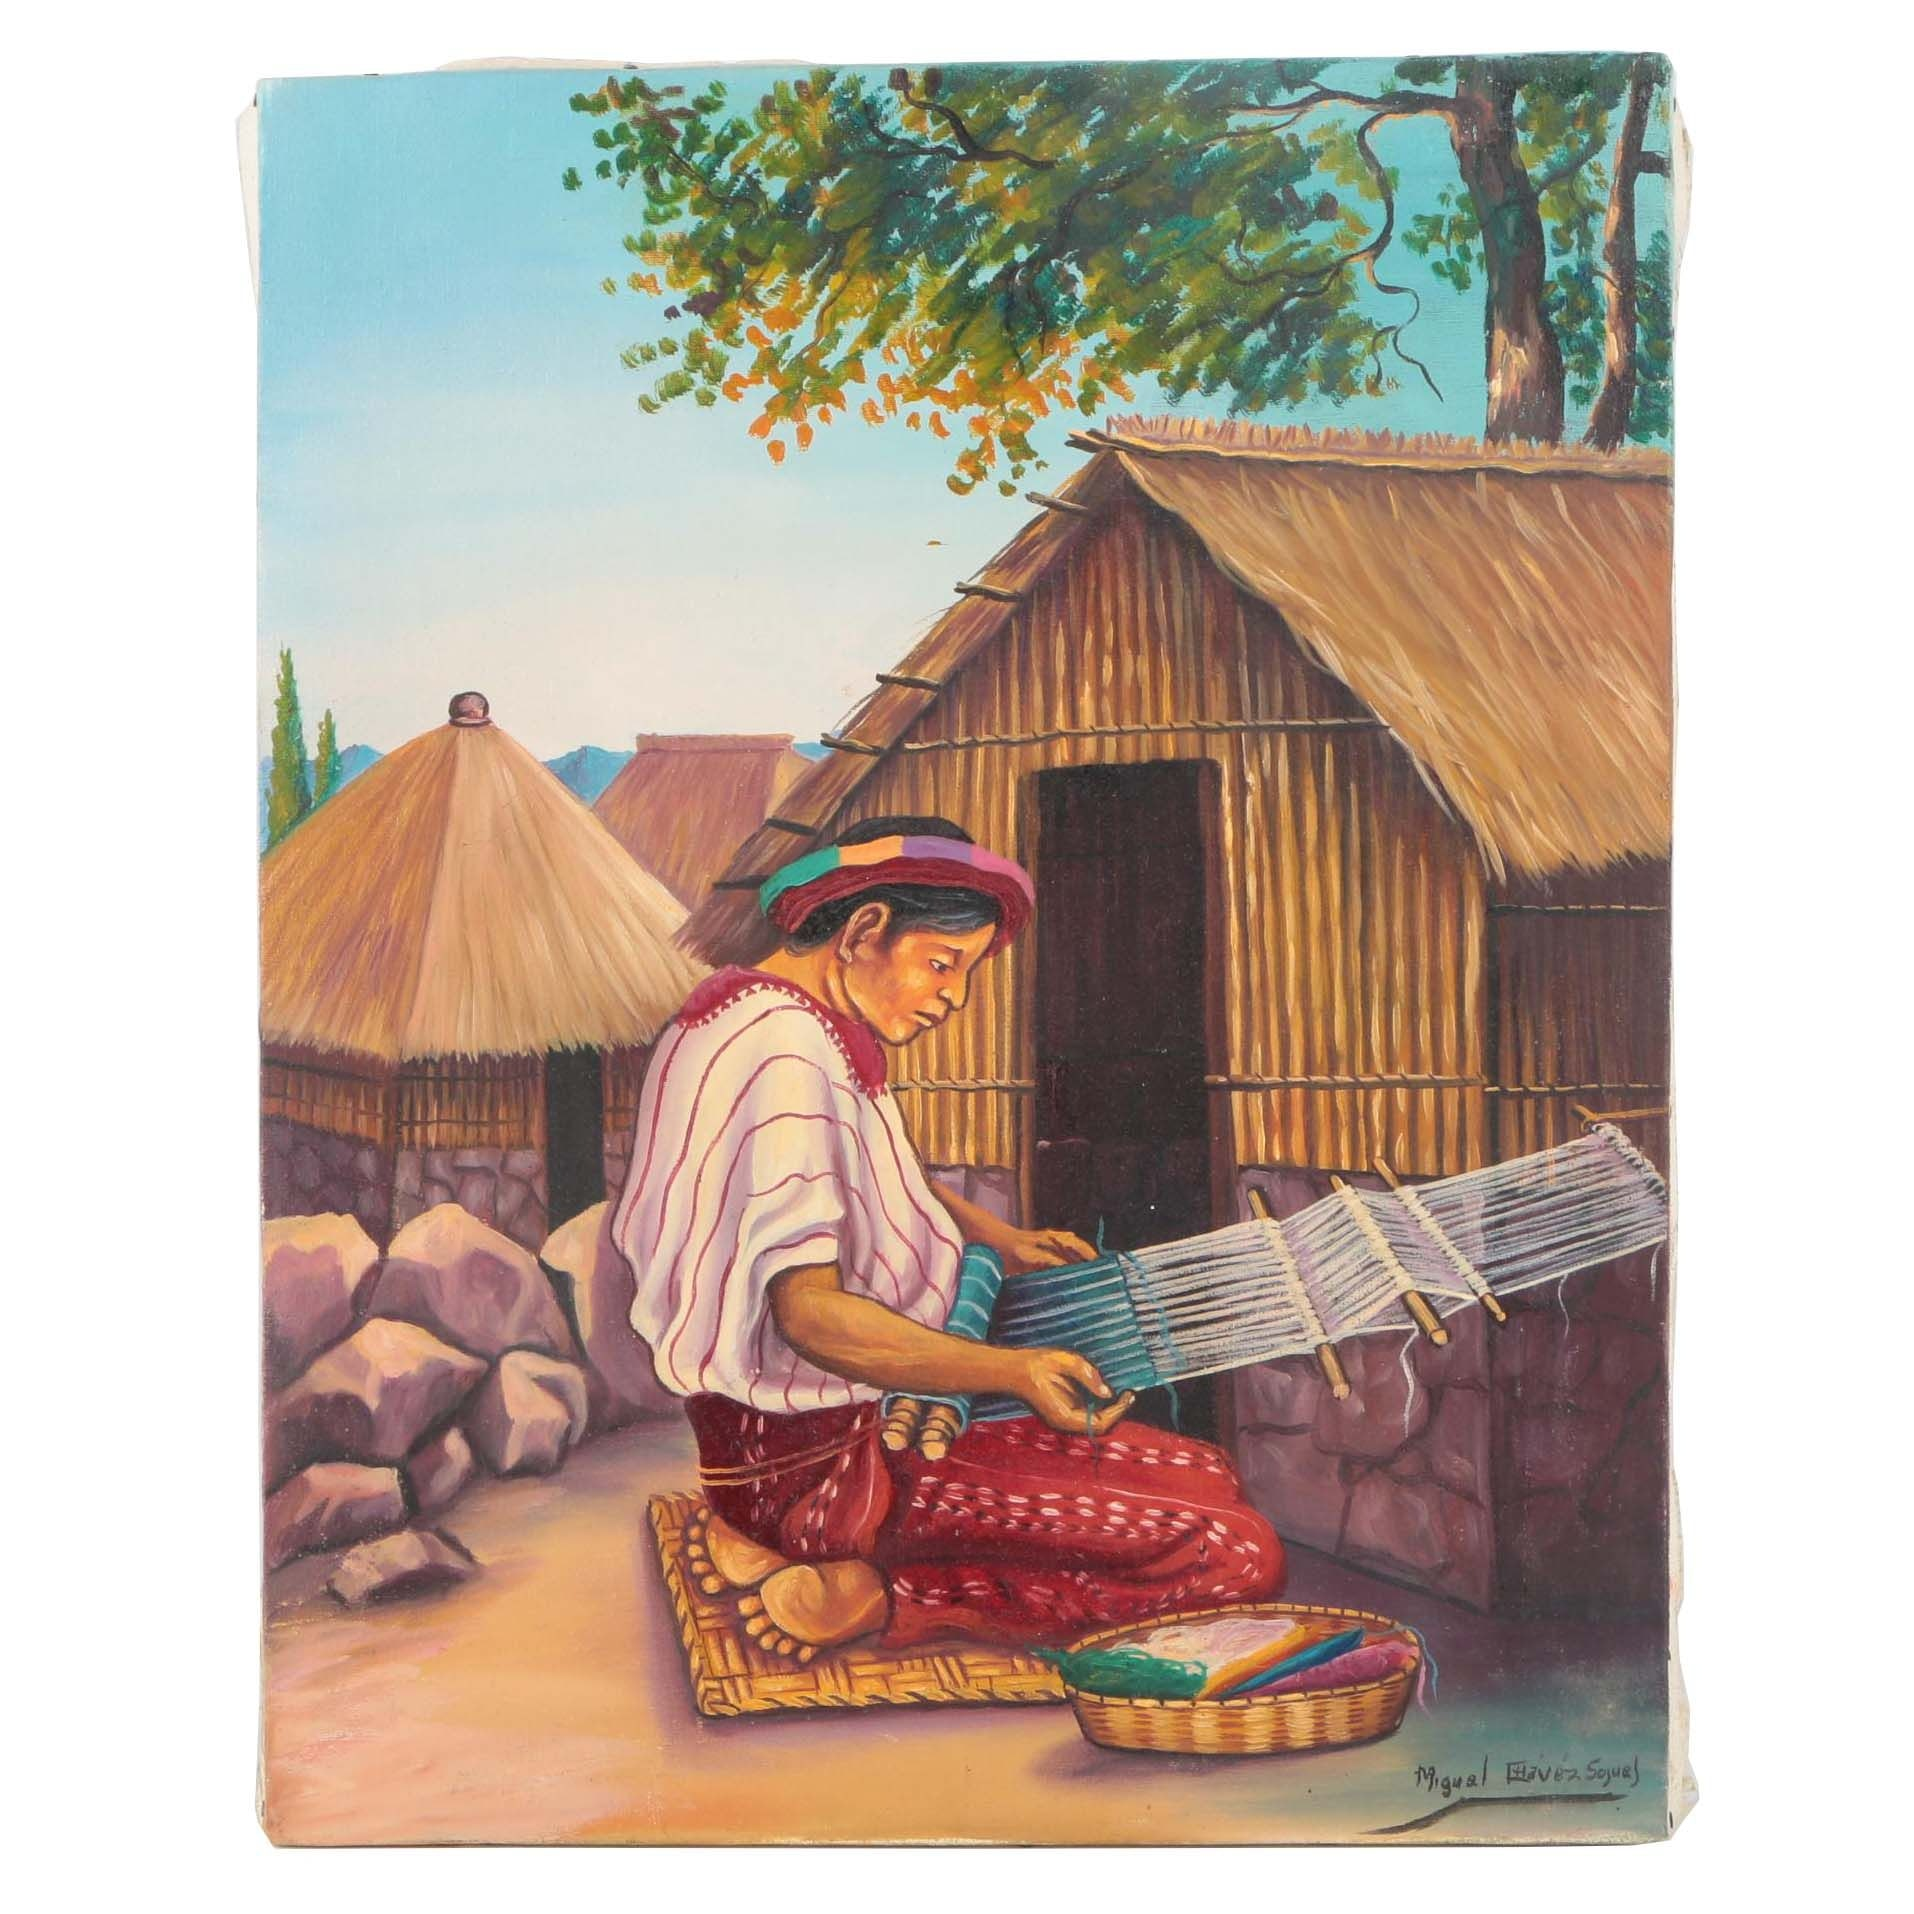 Miguel Chavez Sojuel Oil Painting on Canvas of Central American Style Scene